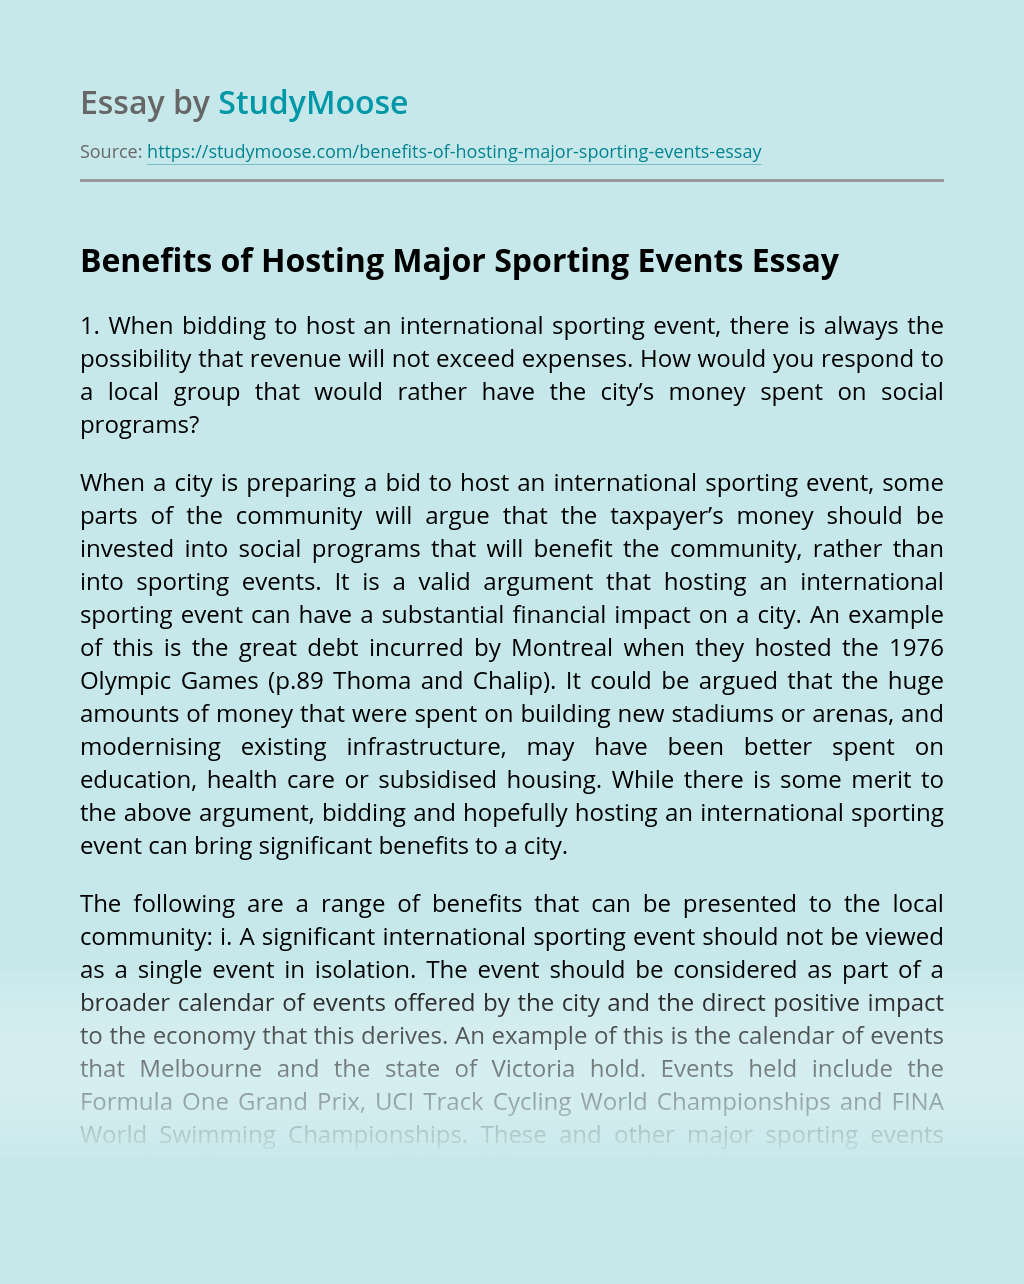 Benefits of Hosting Major Sporting Events